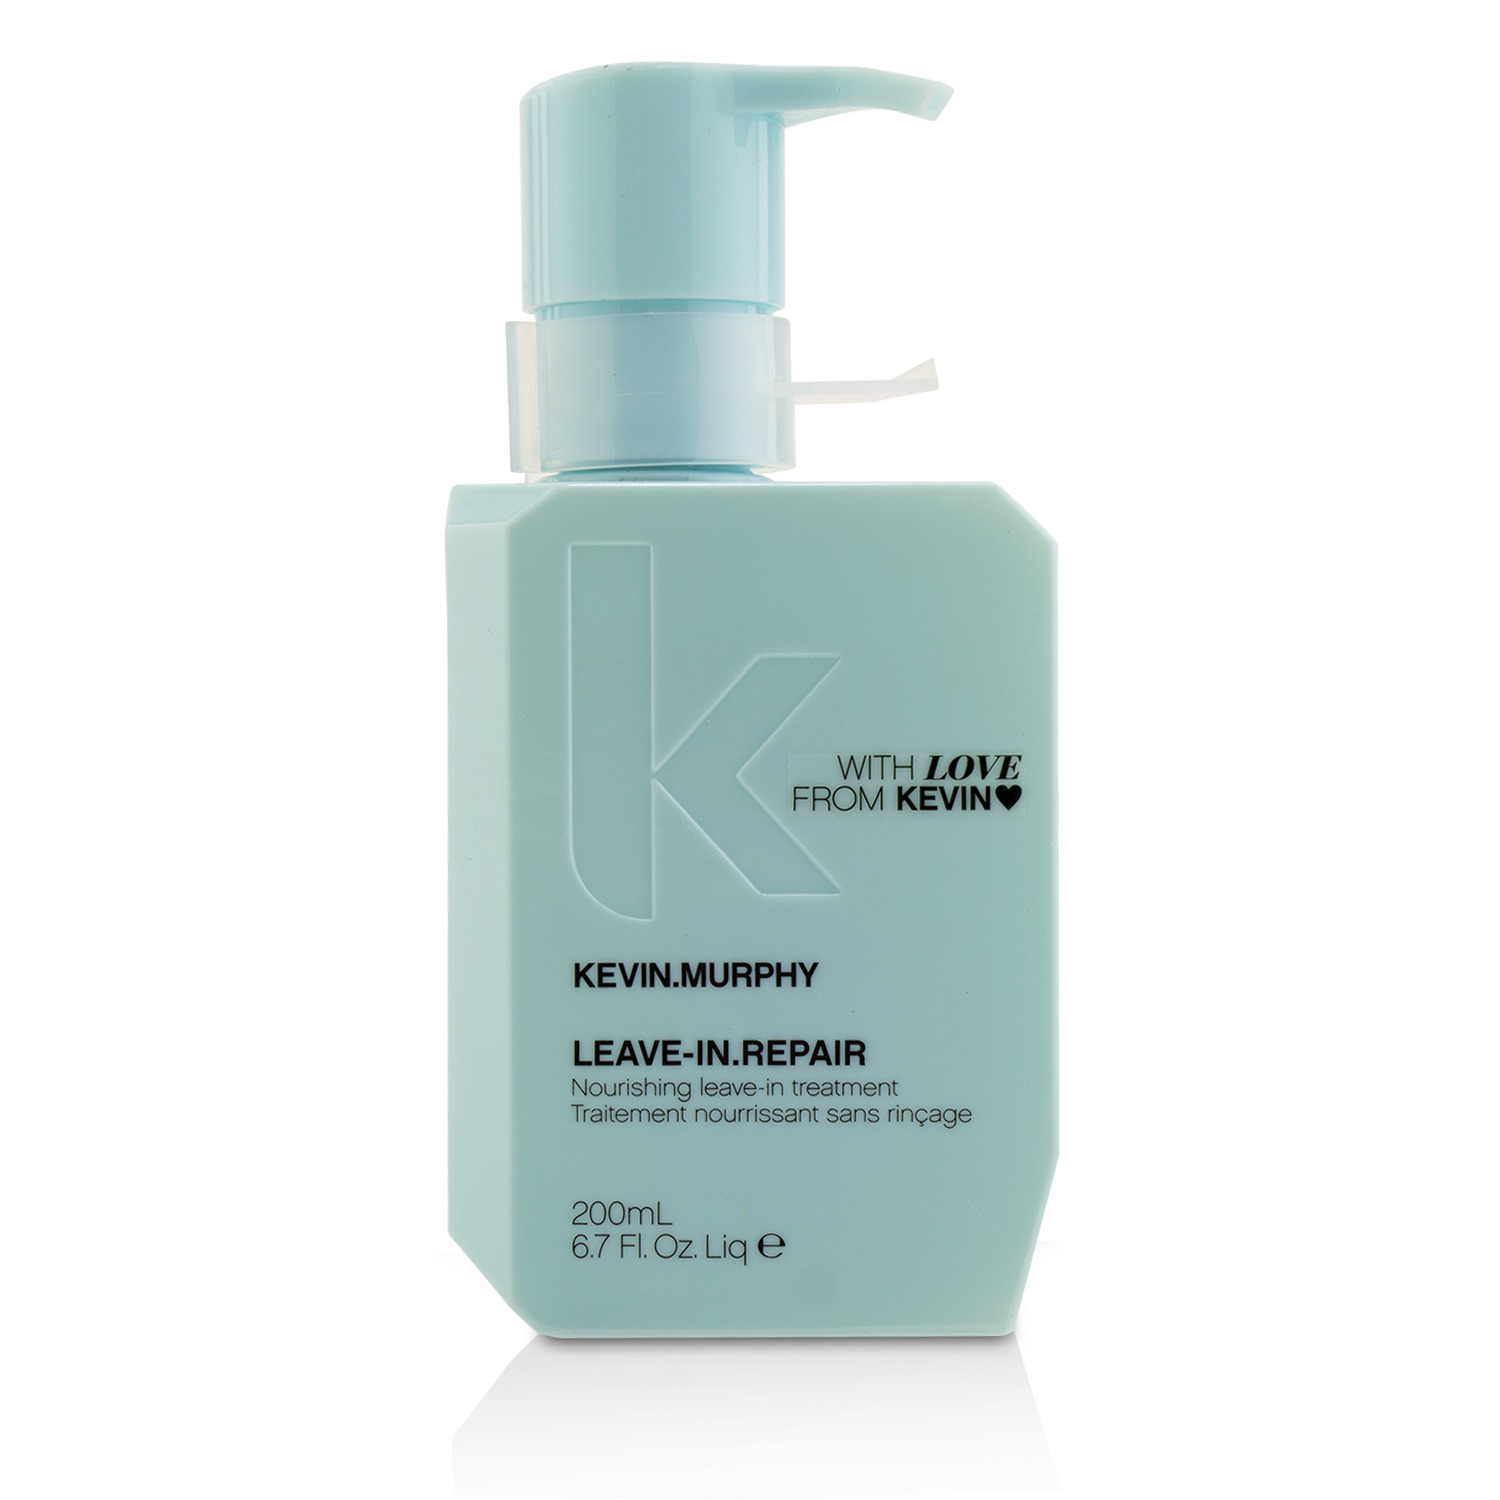 Leave-In.Repair (Nourishing Leave-In Treatment) Kevin.Murphy Image